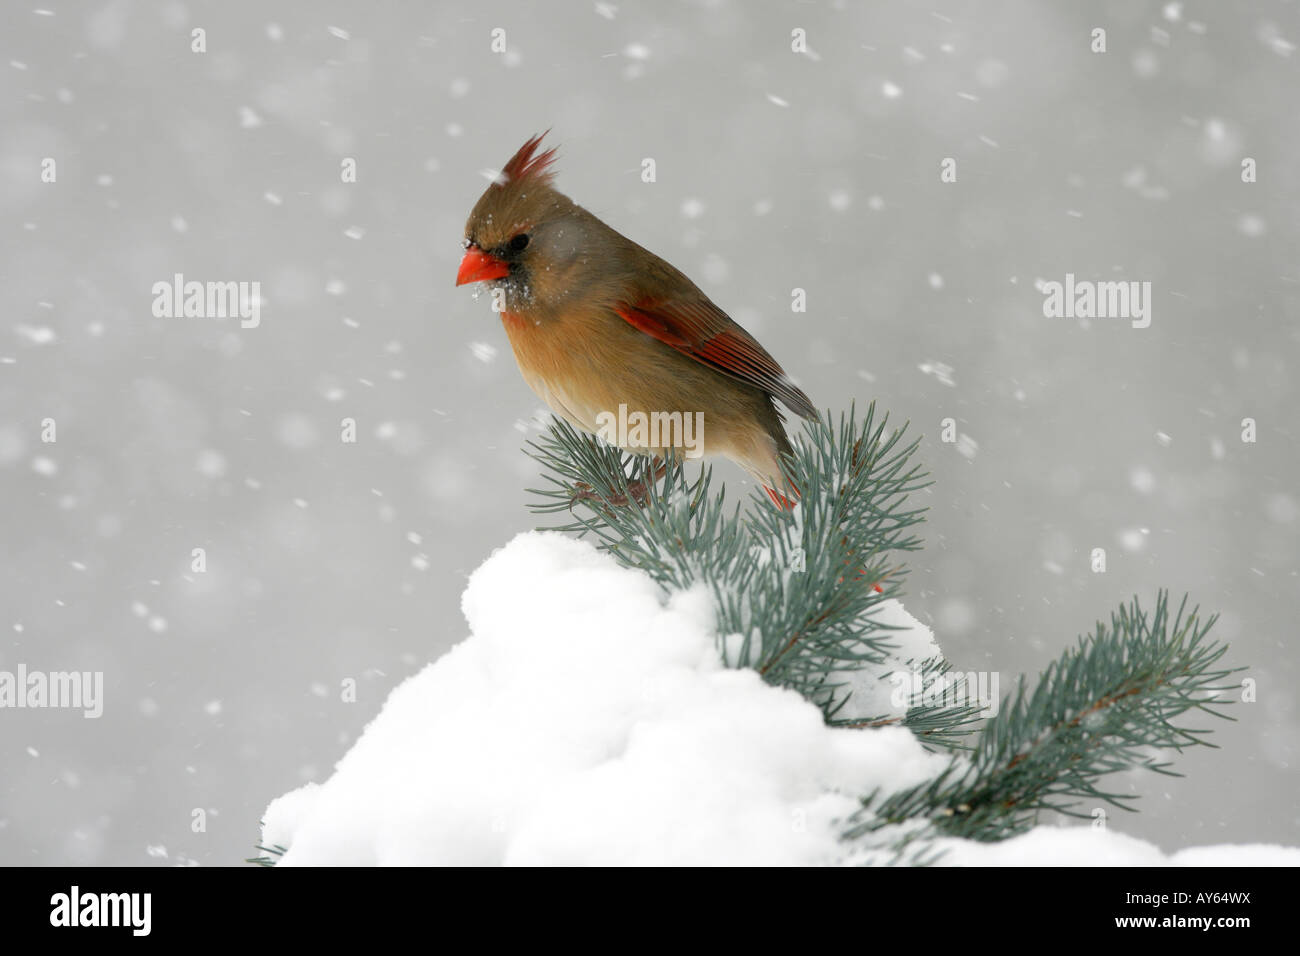 Female Northern Cardinal Perched on Snow Covered Spruce - Stock Image